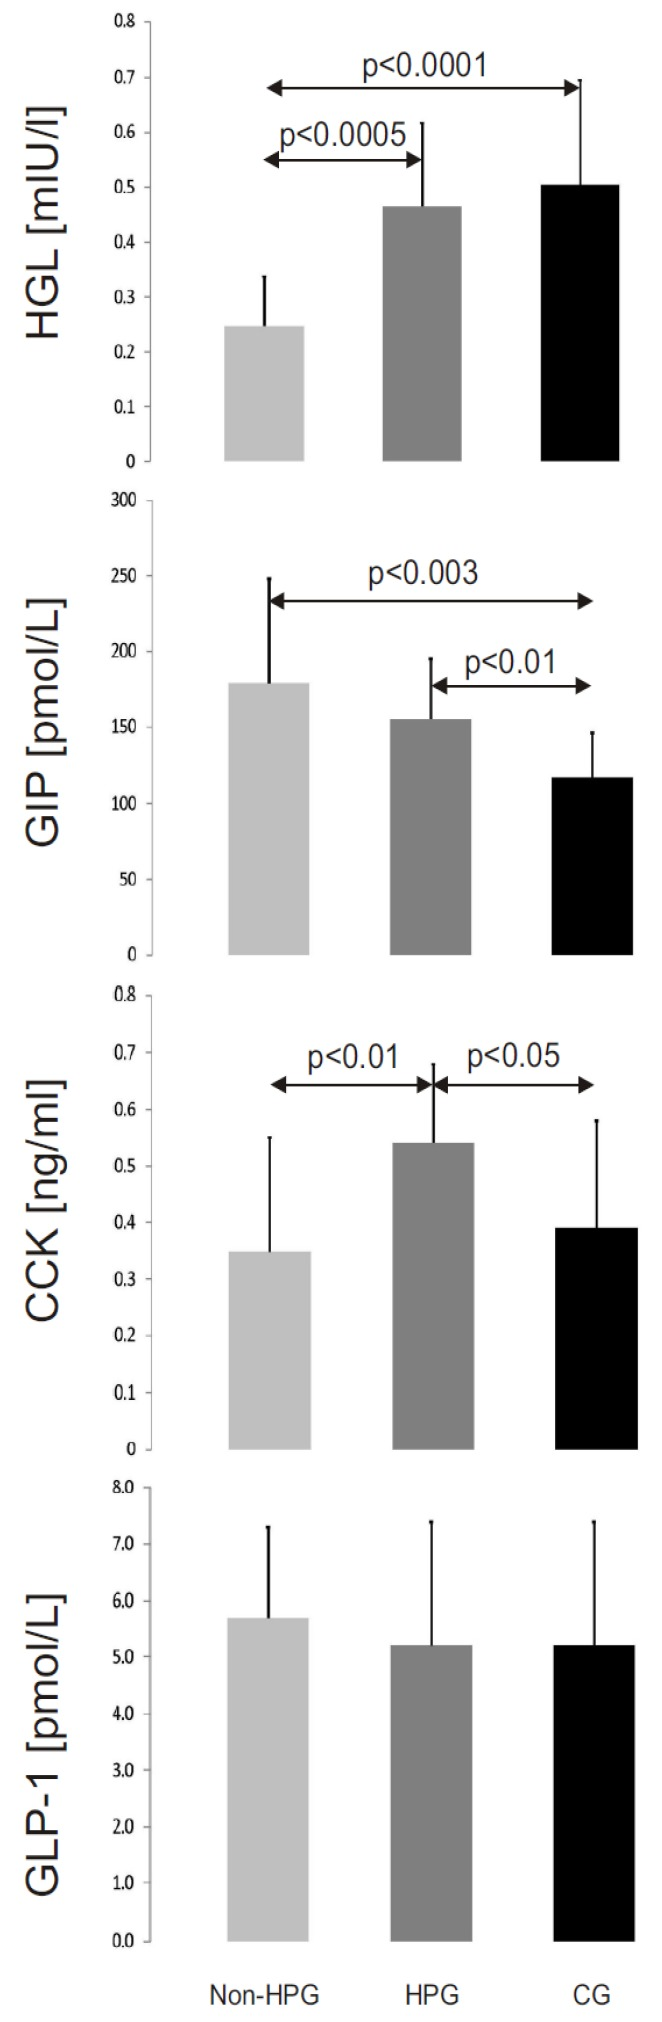 The mean activity of human gastric lipase (HGL) and mean concentrations of cholecystokinin (CCK), glucagon-like peptide-1 <t>(GLP-1)</t> and glucose-dependent insulinotropic peptide (GIP) in the study groups (non-HPG—non- Helicobacter pylori gastritis group, HPG— Helicobacter pylori gastritis group, CG—control group).